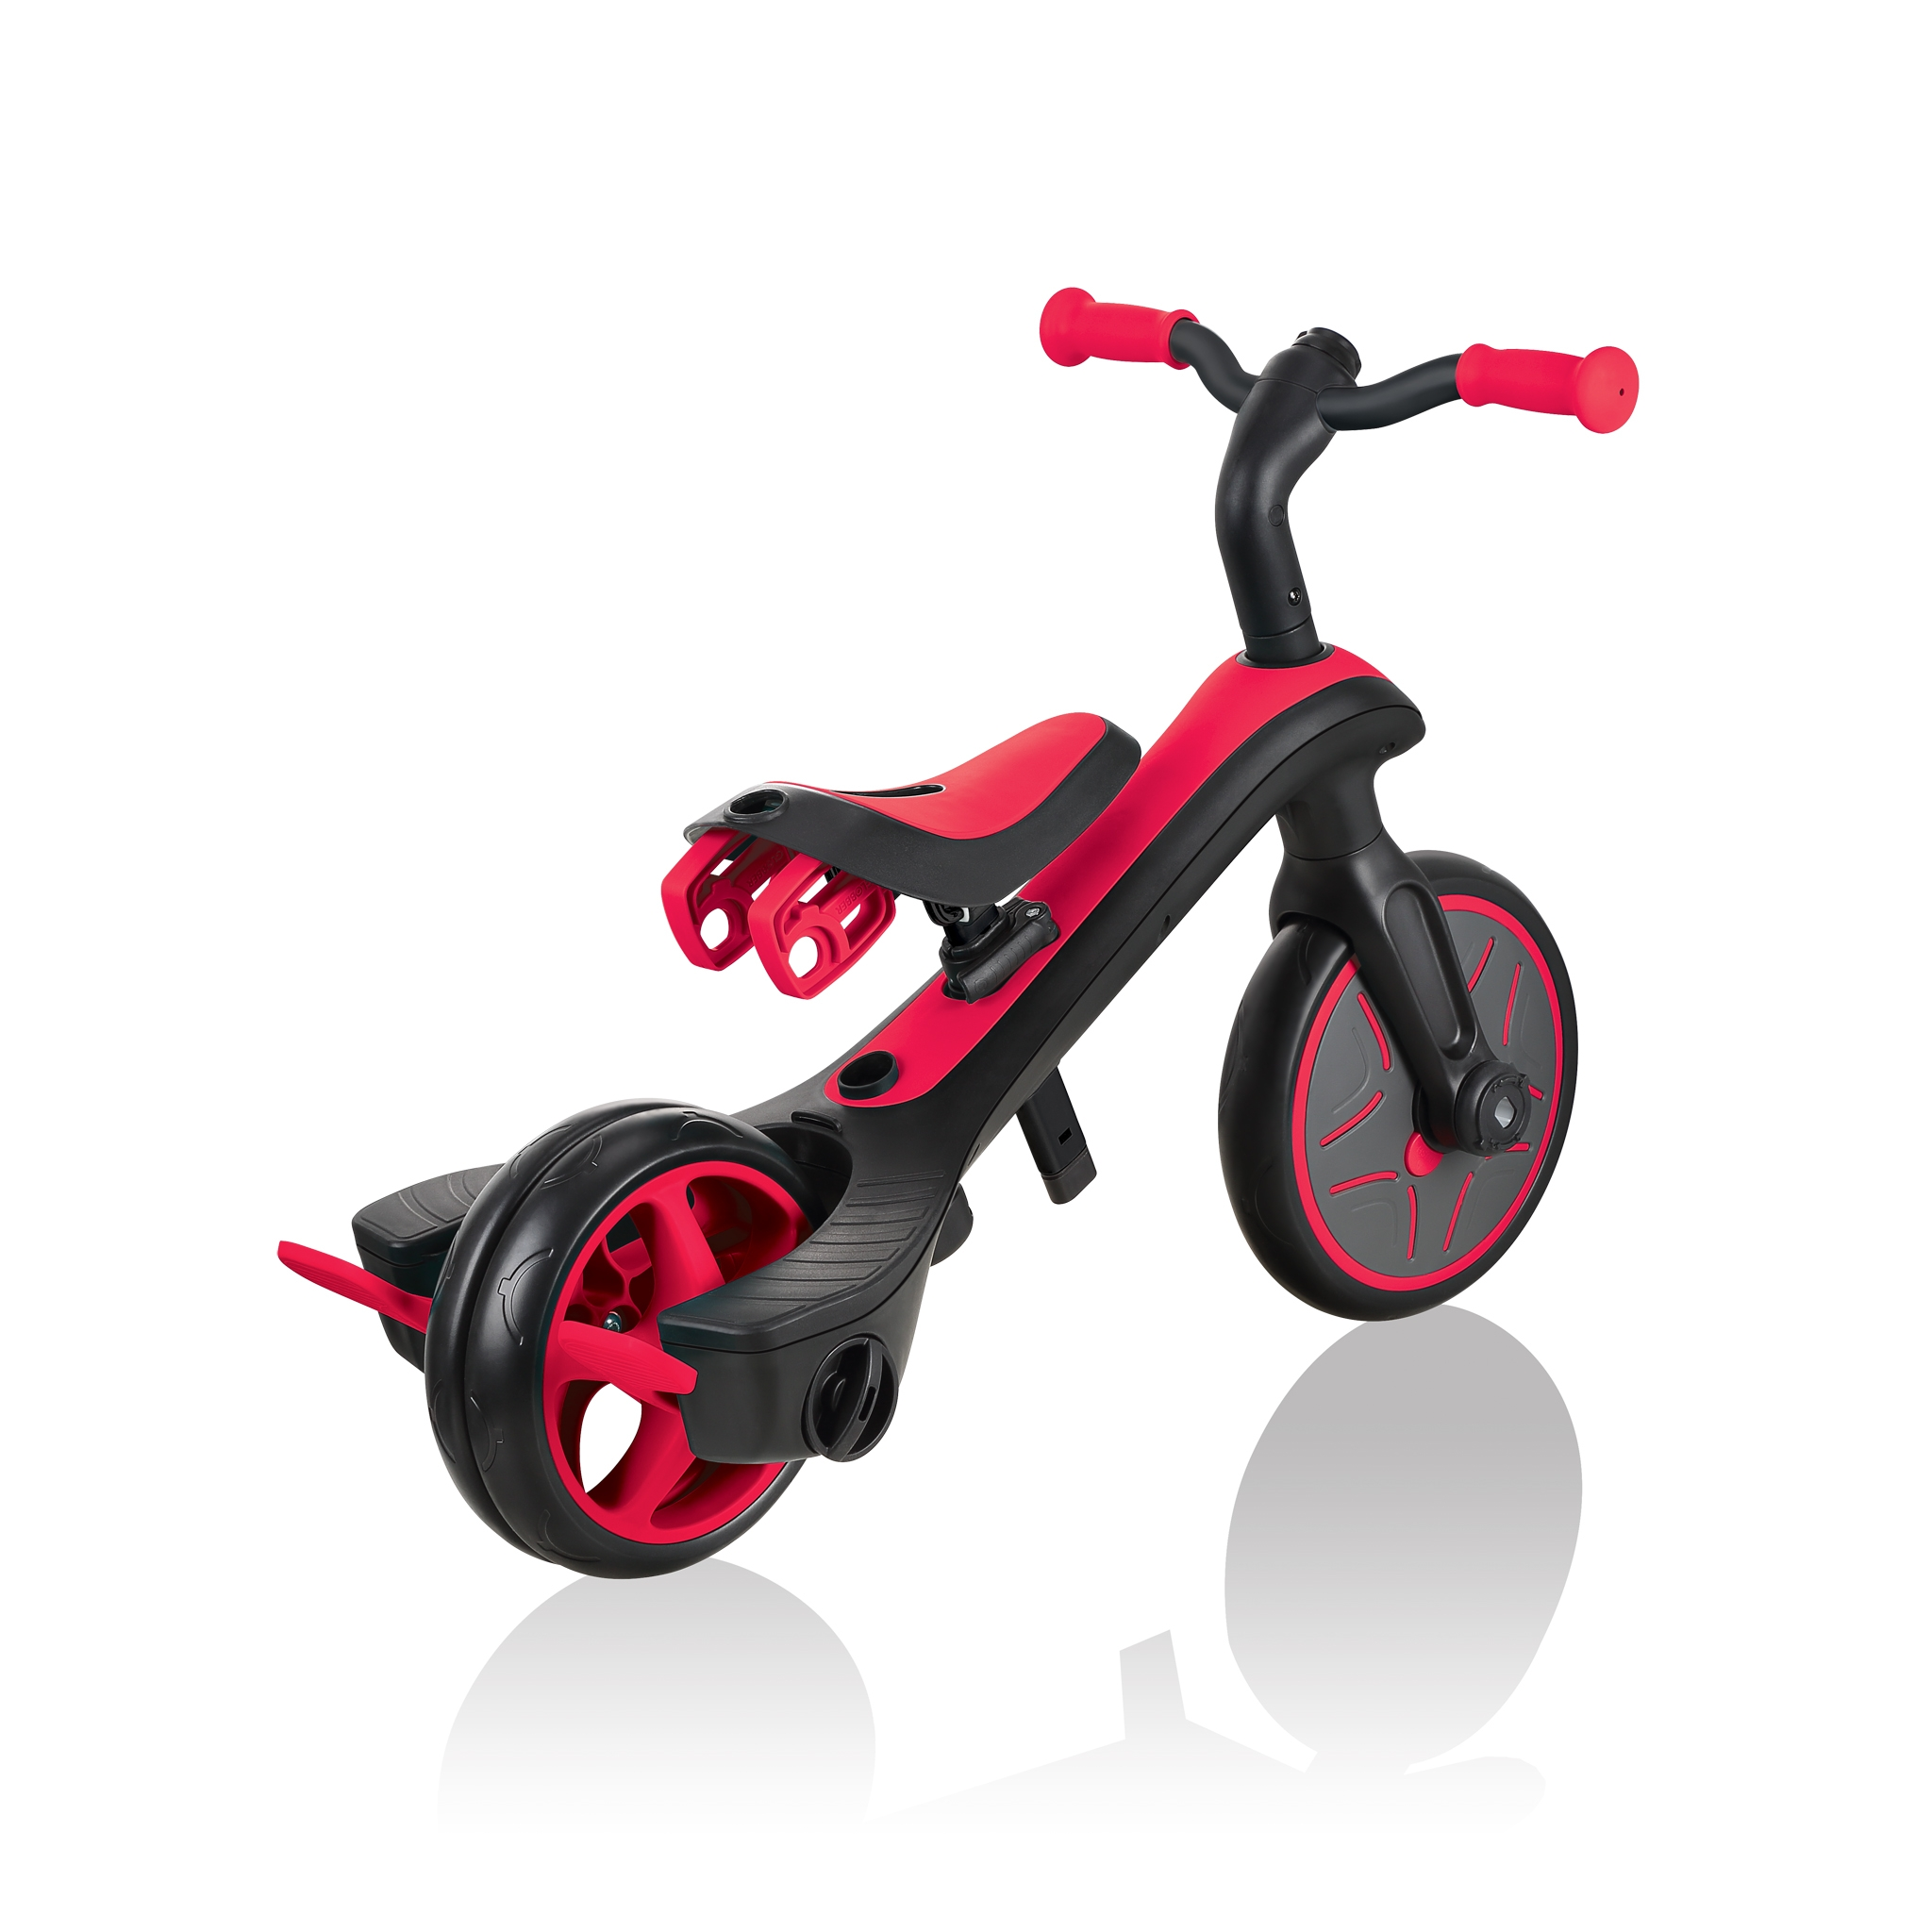 Globber-EXPLORER-TRIKE-3in1-all-in-one-baby-tricycle-and-kids-balance-bike-with-smart-pedal-storage_new-red